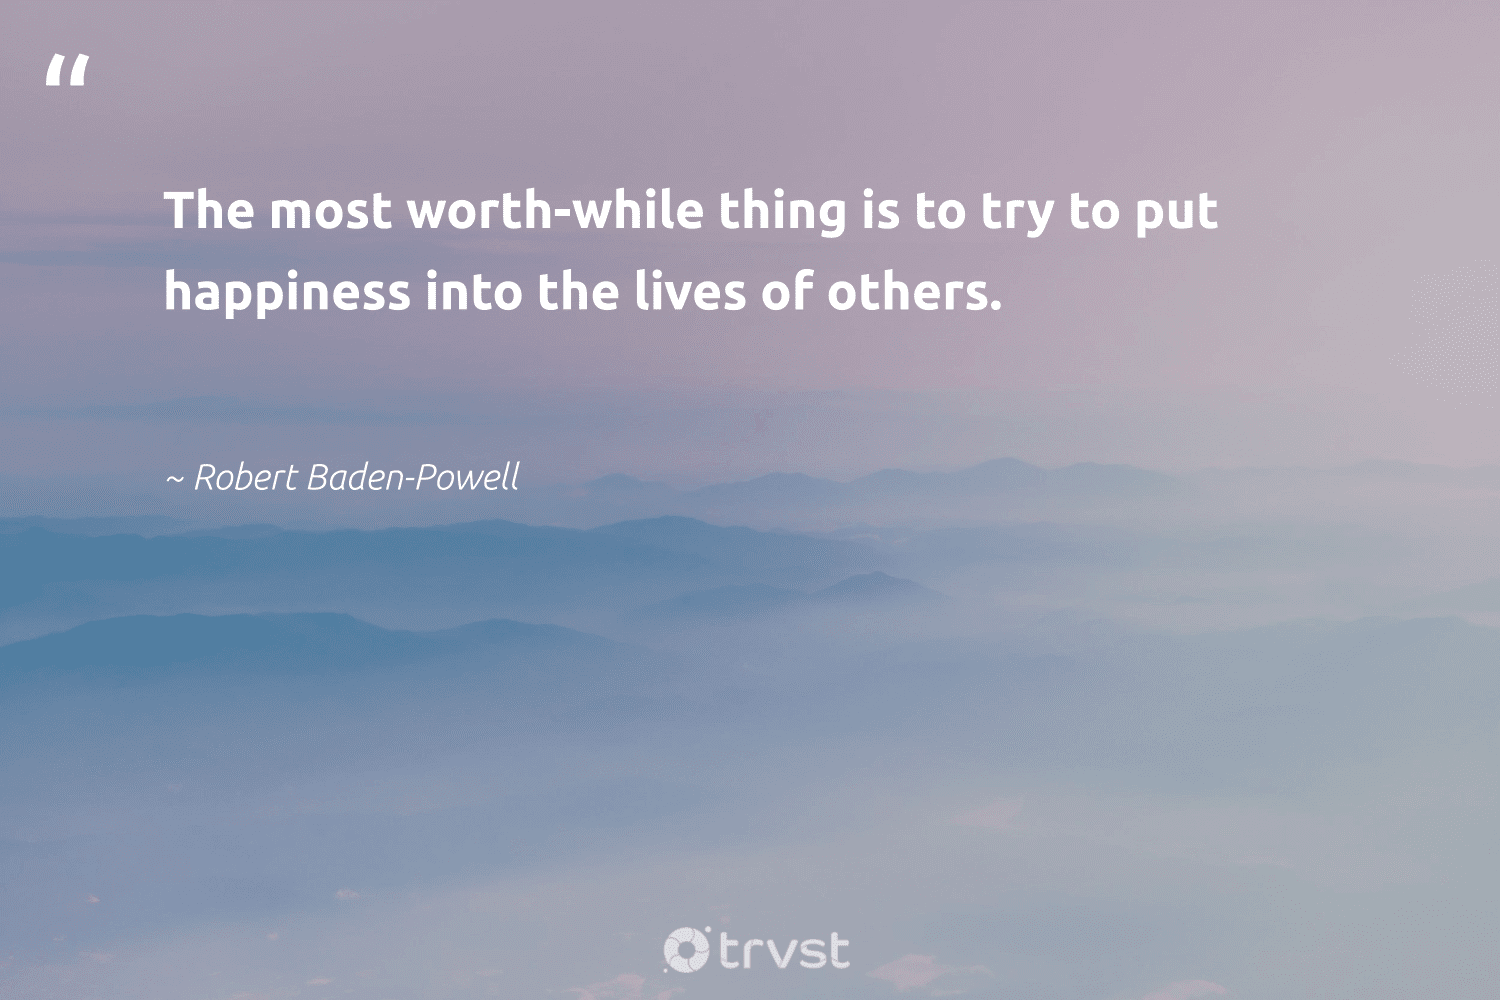 """""""The most worth-while thing is to try to put happiness into the lives of others.""""  - Robert Baden-Powell #trvst #quotes #happiness #changemakers #bethechange #begreat #impact #health #thinkgreen #togetherwecan #dotherightthing #nevergiveup"""